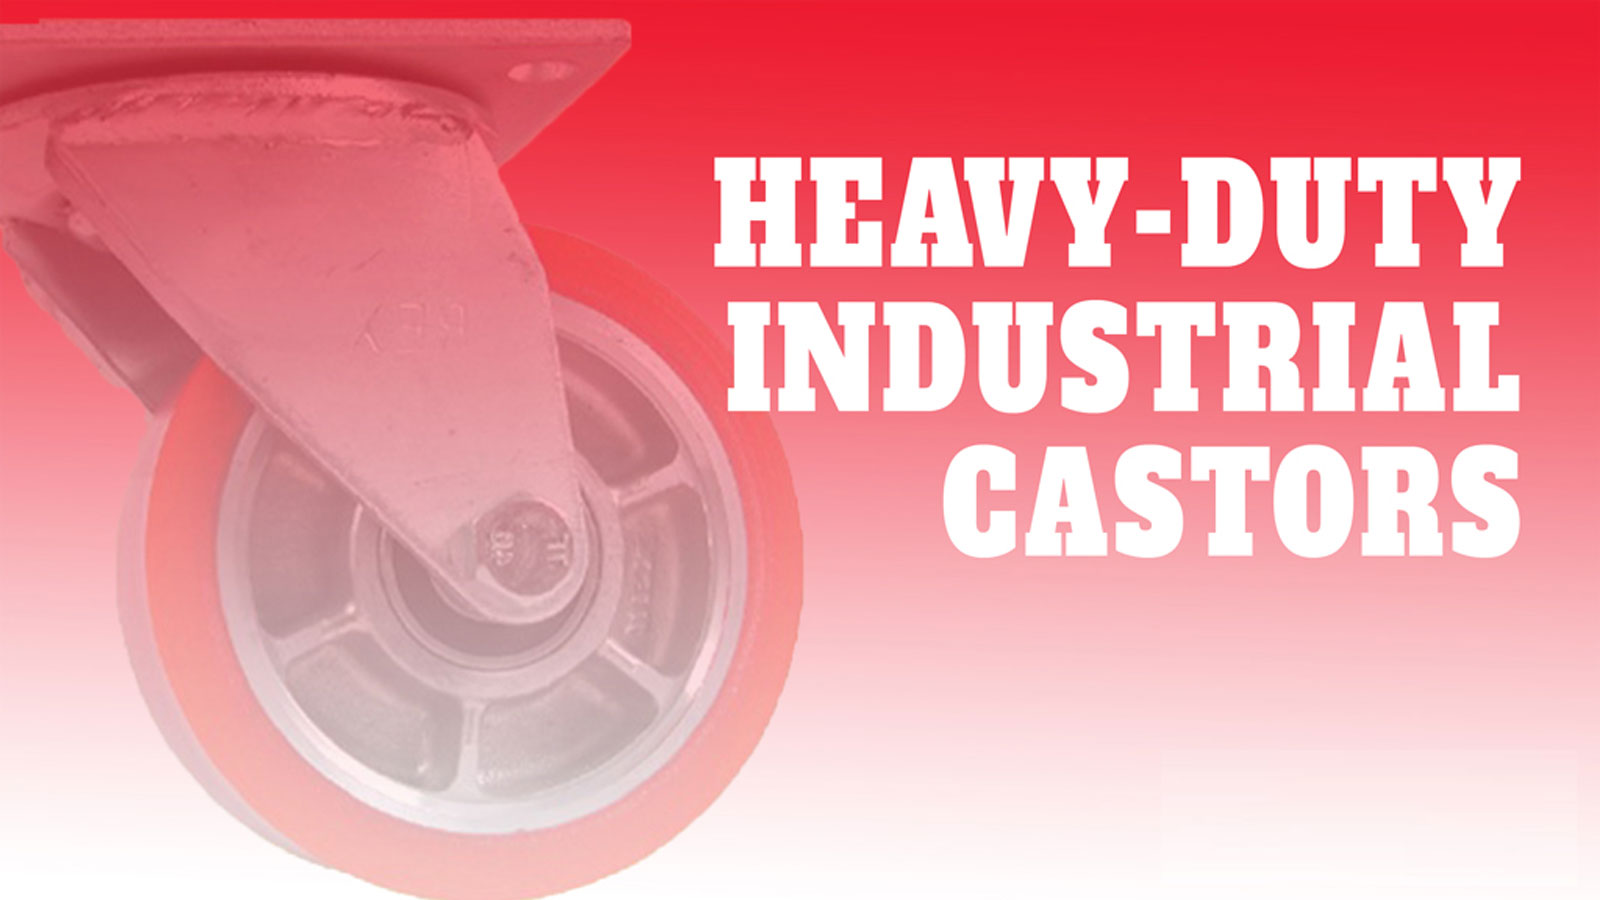 Castor-Heavy-Duty-Industrial